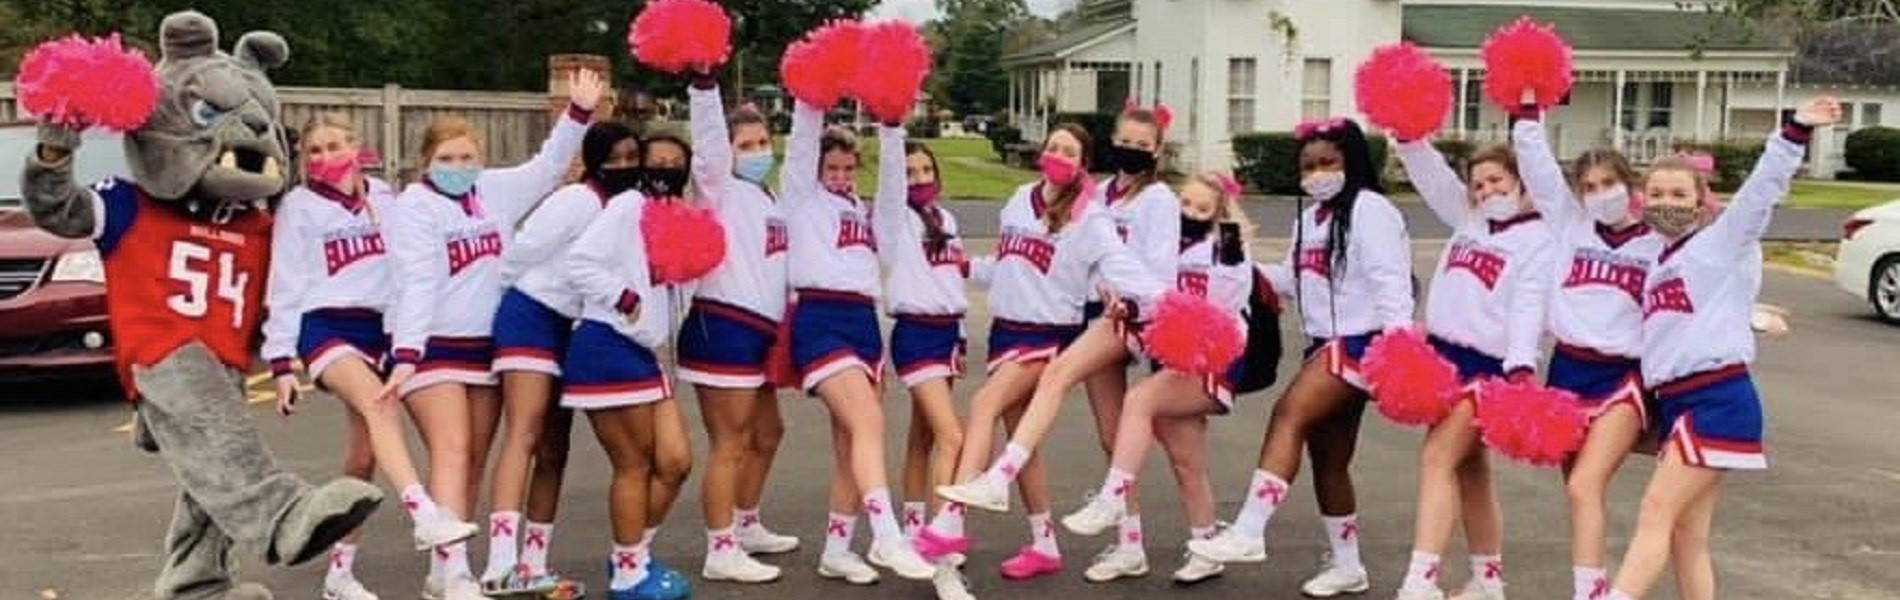 SHS Cheerleaders